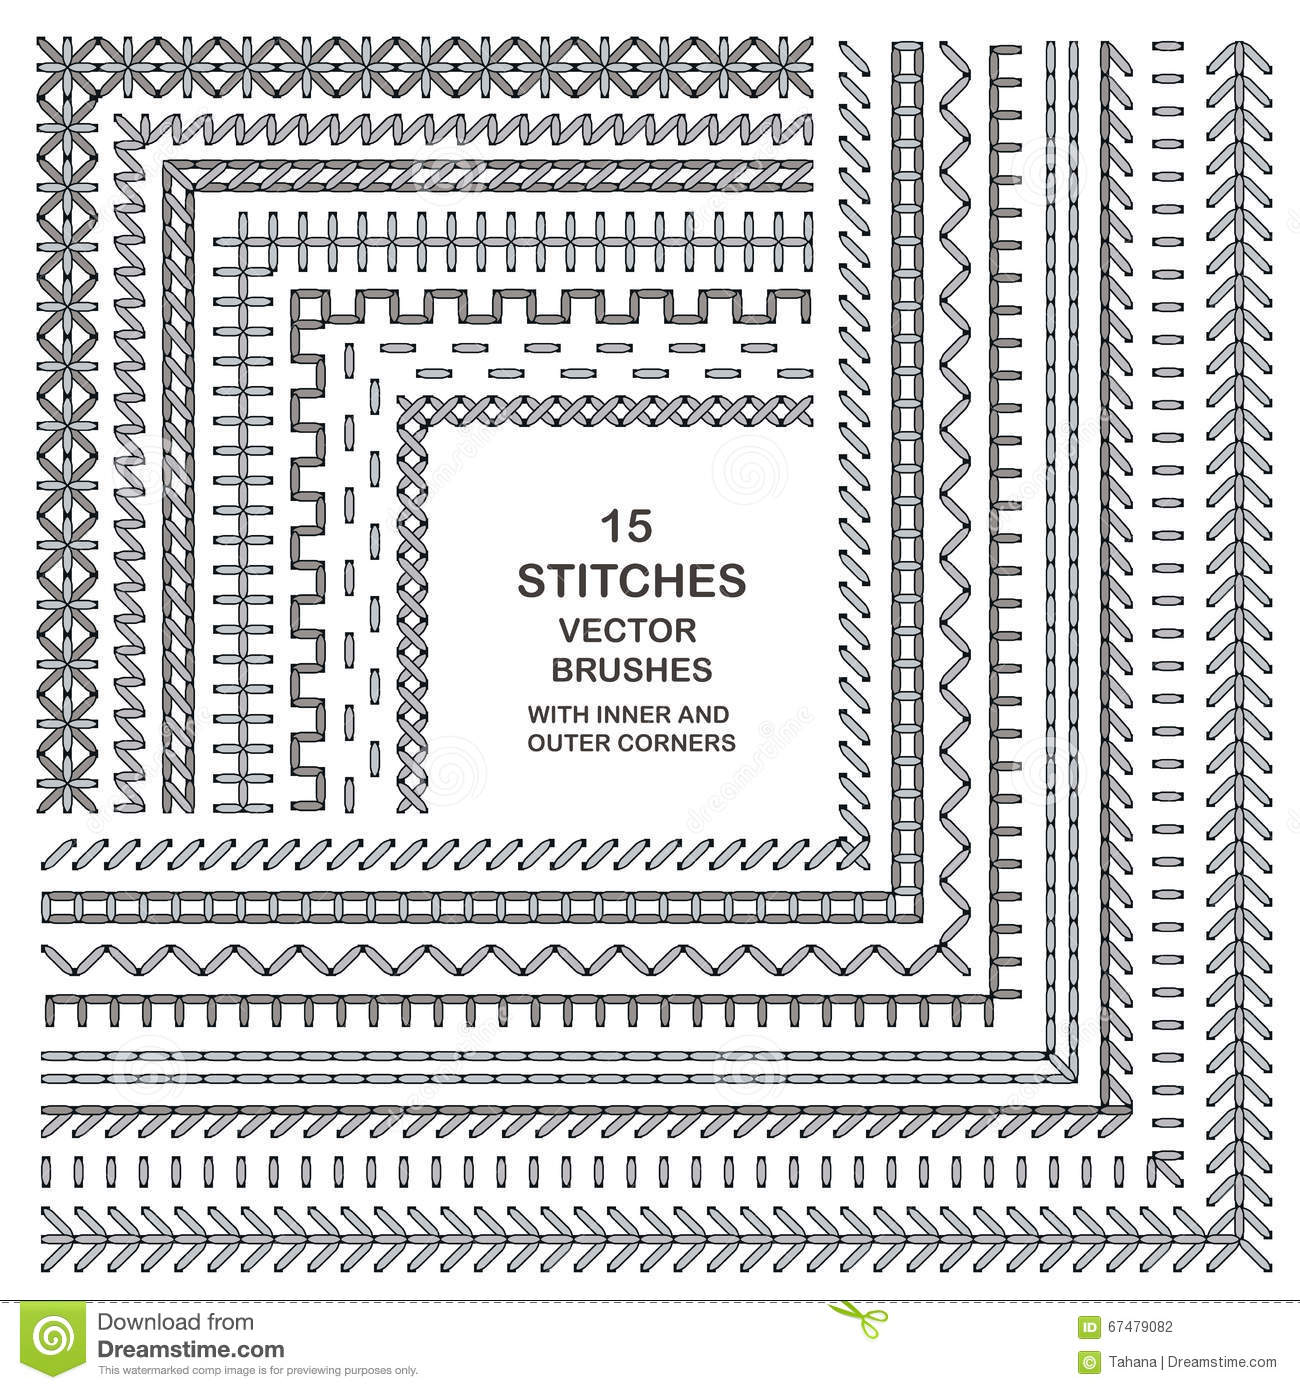 Vector Cross Stitches Pattern Brushes Stock Vector